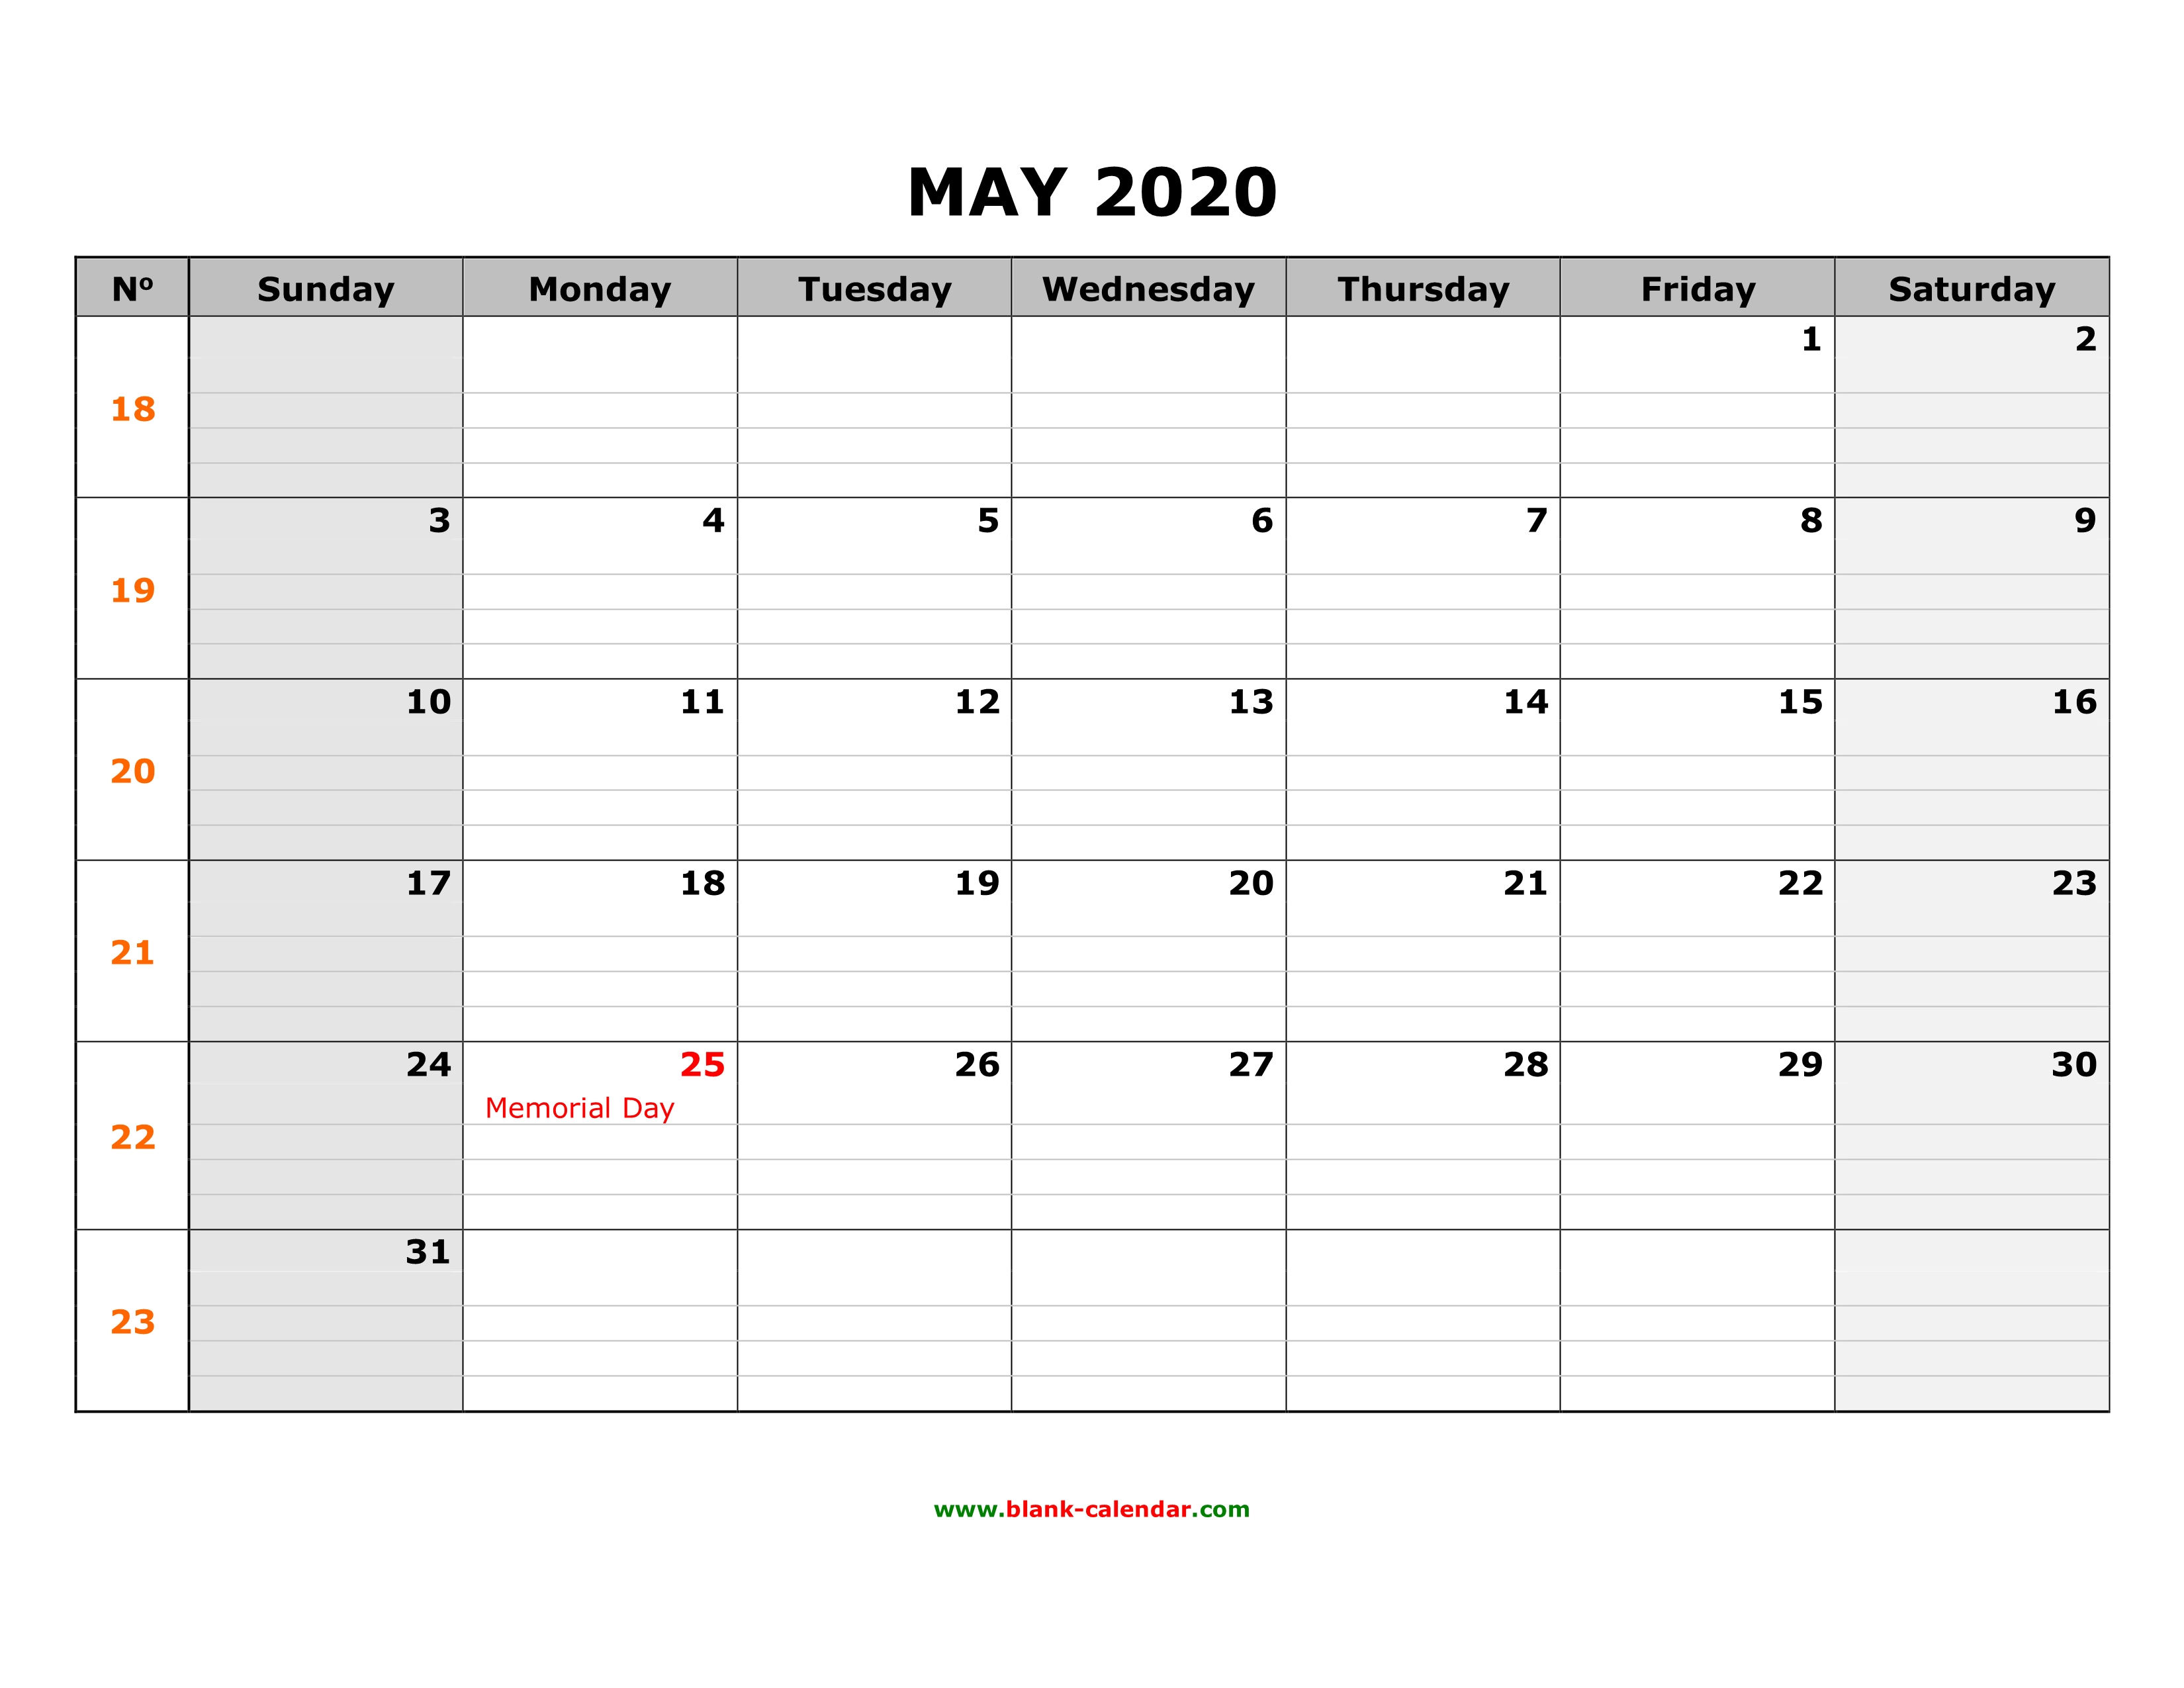 Calendar May 2020.Free Download Printable May 2020 Calendar Large Box Grid Space For